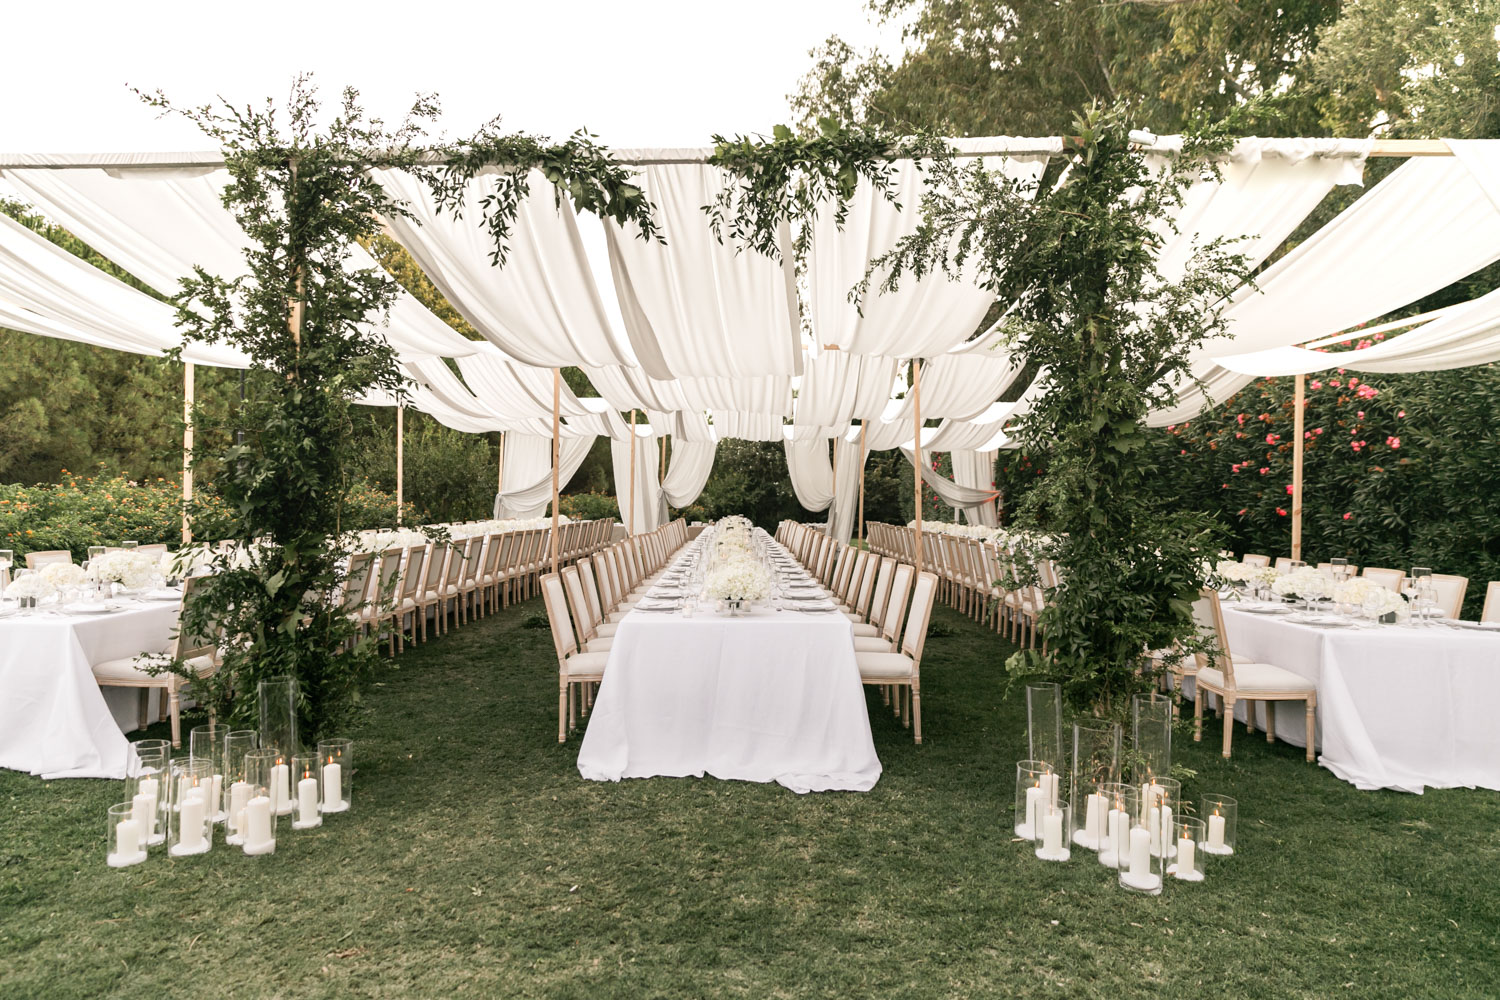 Sails over table wedding long table white flowers Cancha II Sotogrande